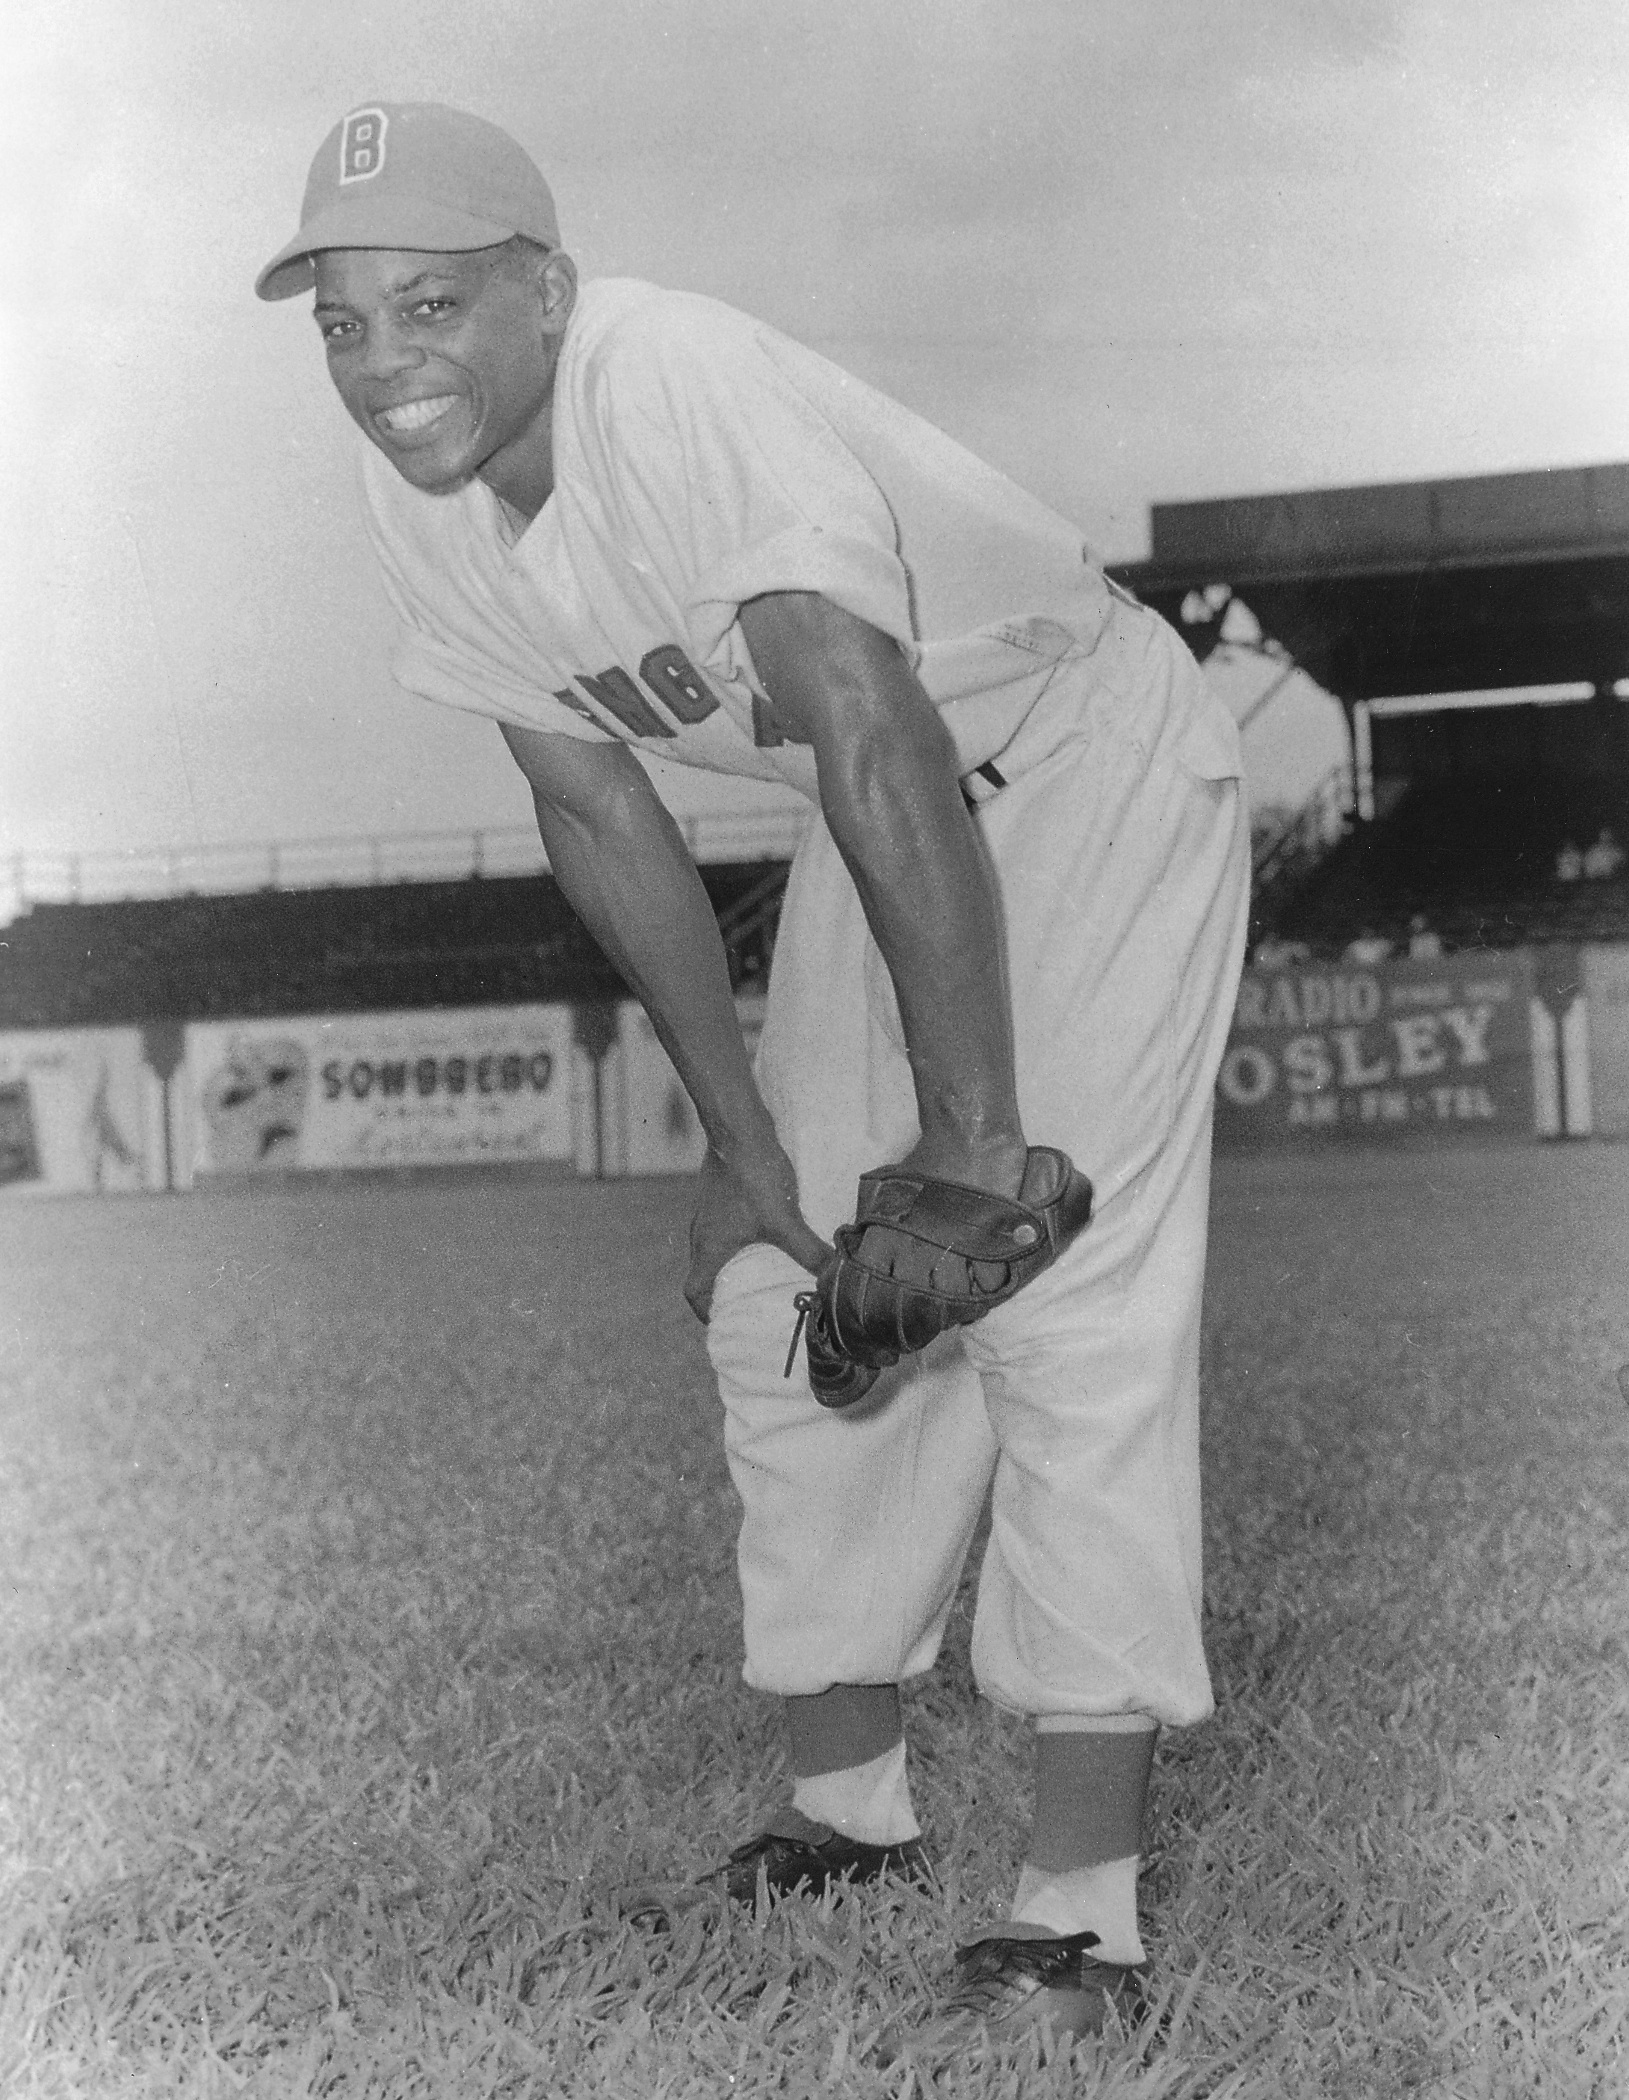 Seventeen-year-old Black Baron Willie Mays, with Rickwood right field in backgound, 1948 (T.H. Hayes Collection, Memphis Shelby Public Library)